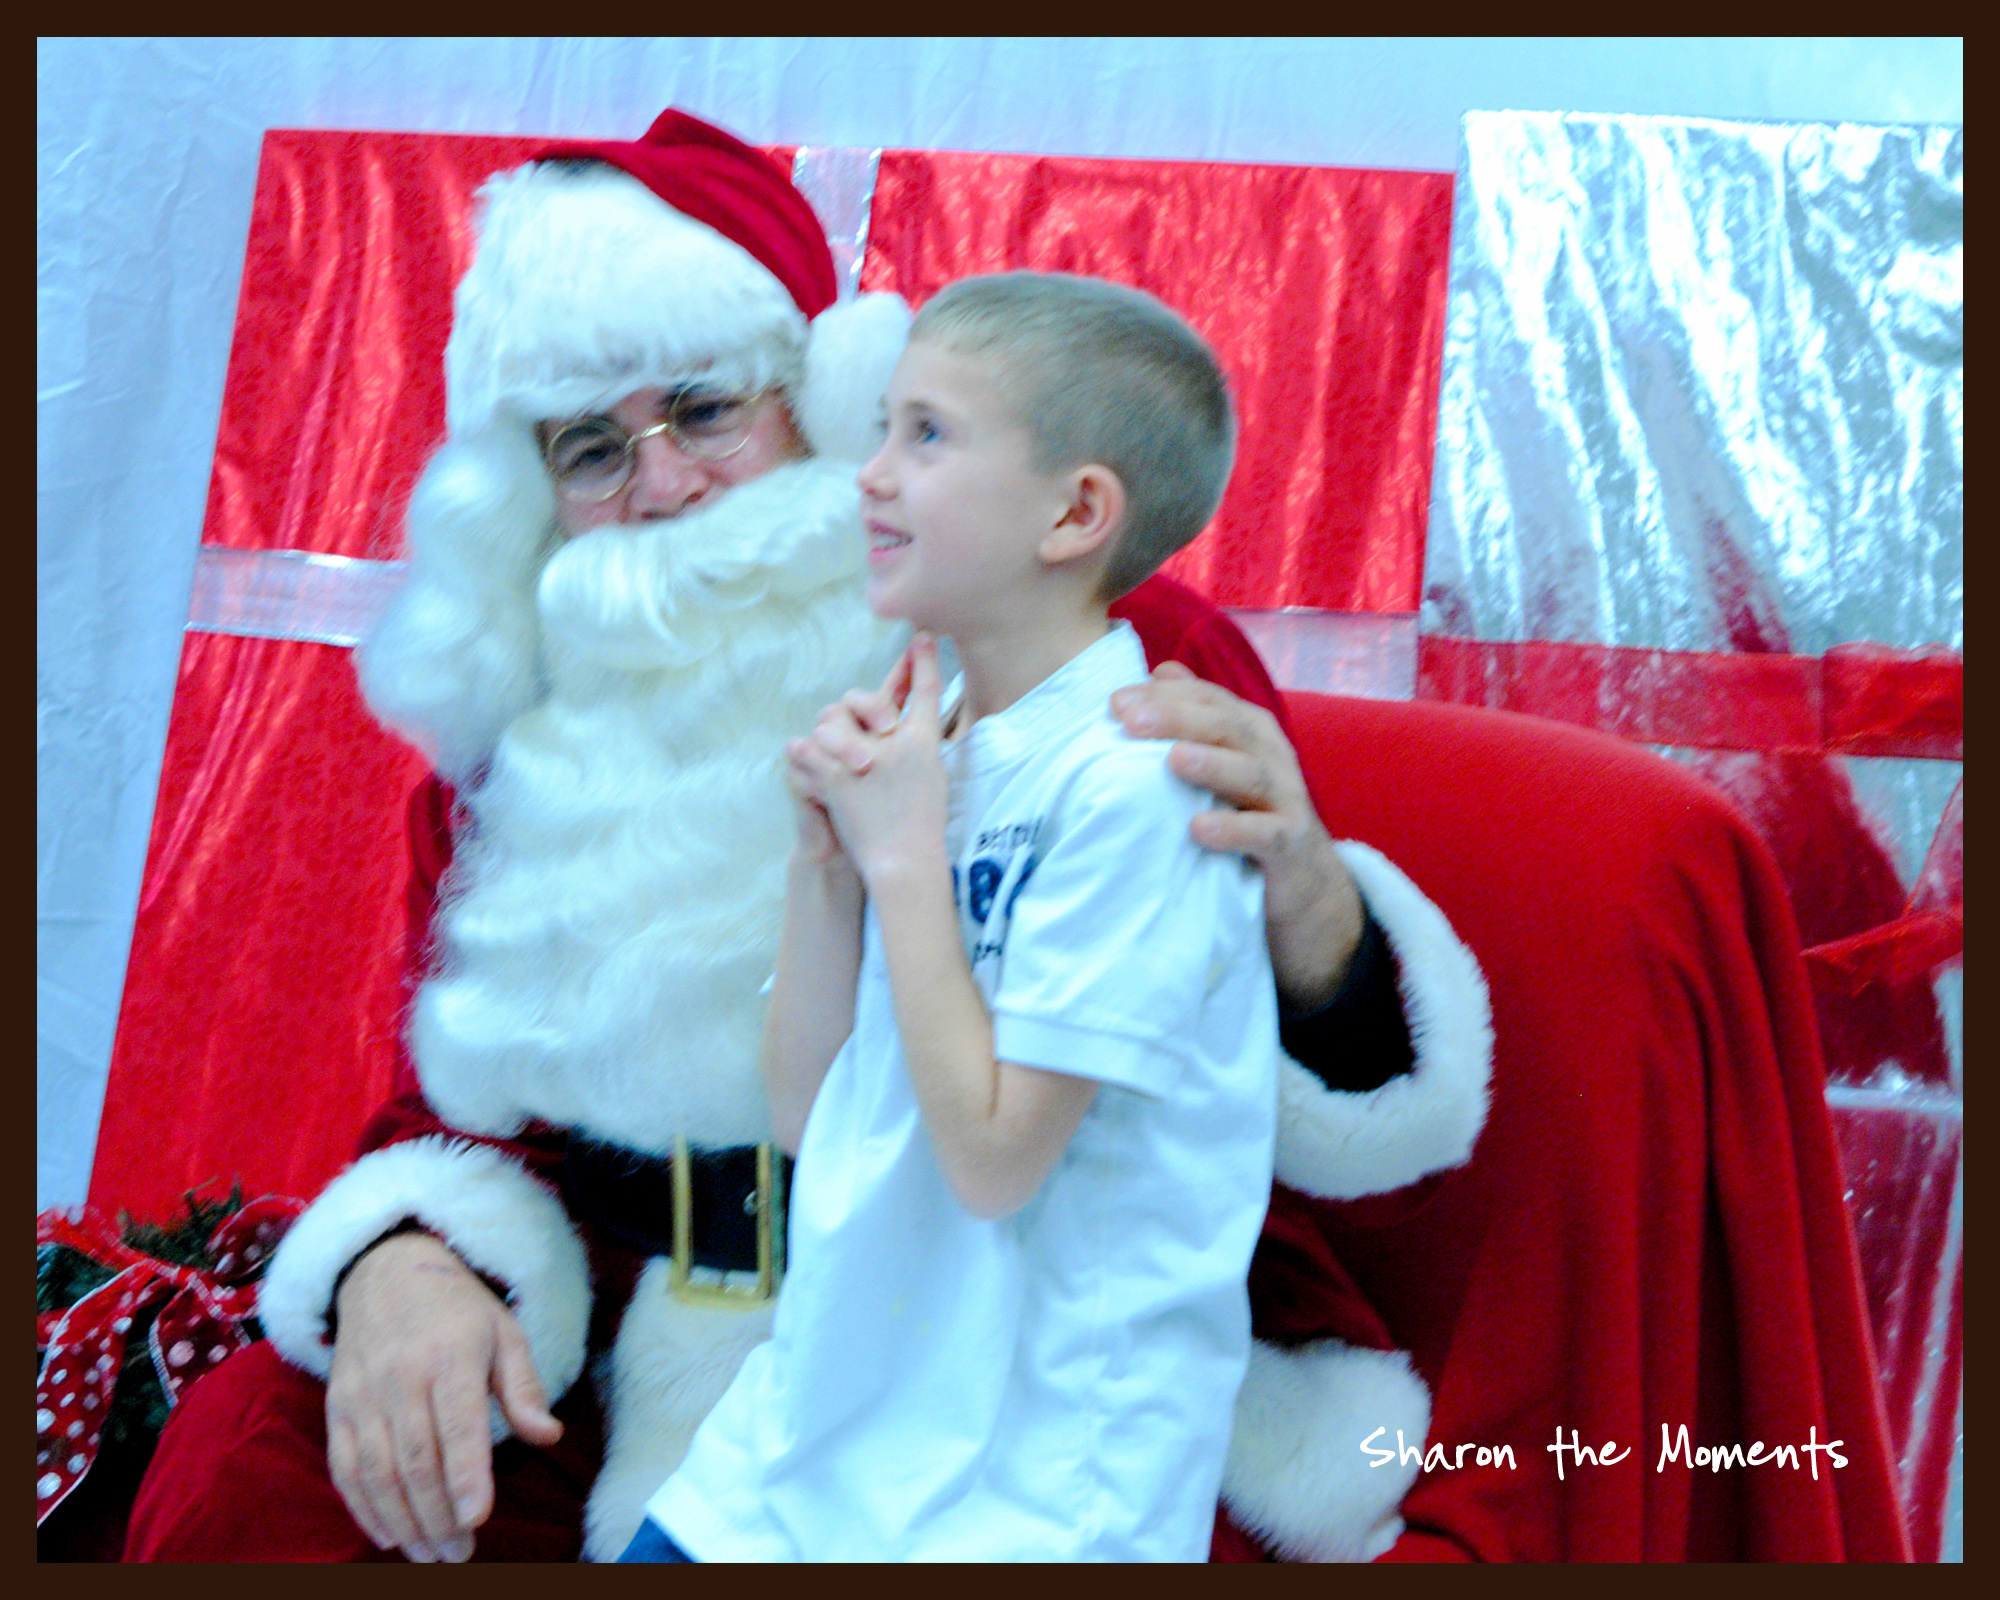 Christmas Present wishing and hoping with Santa Claus|Sharon the Moments blog